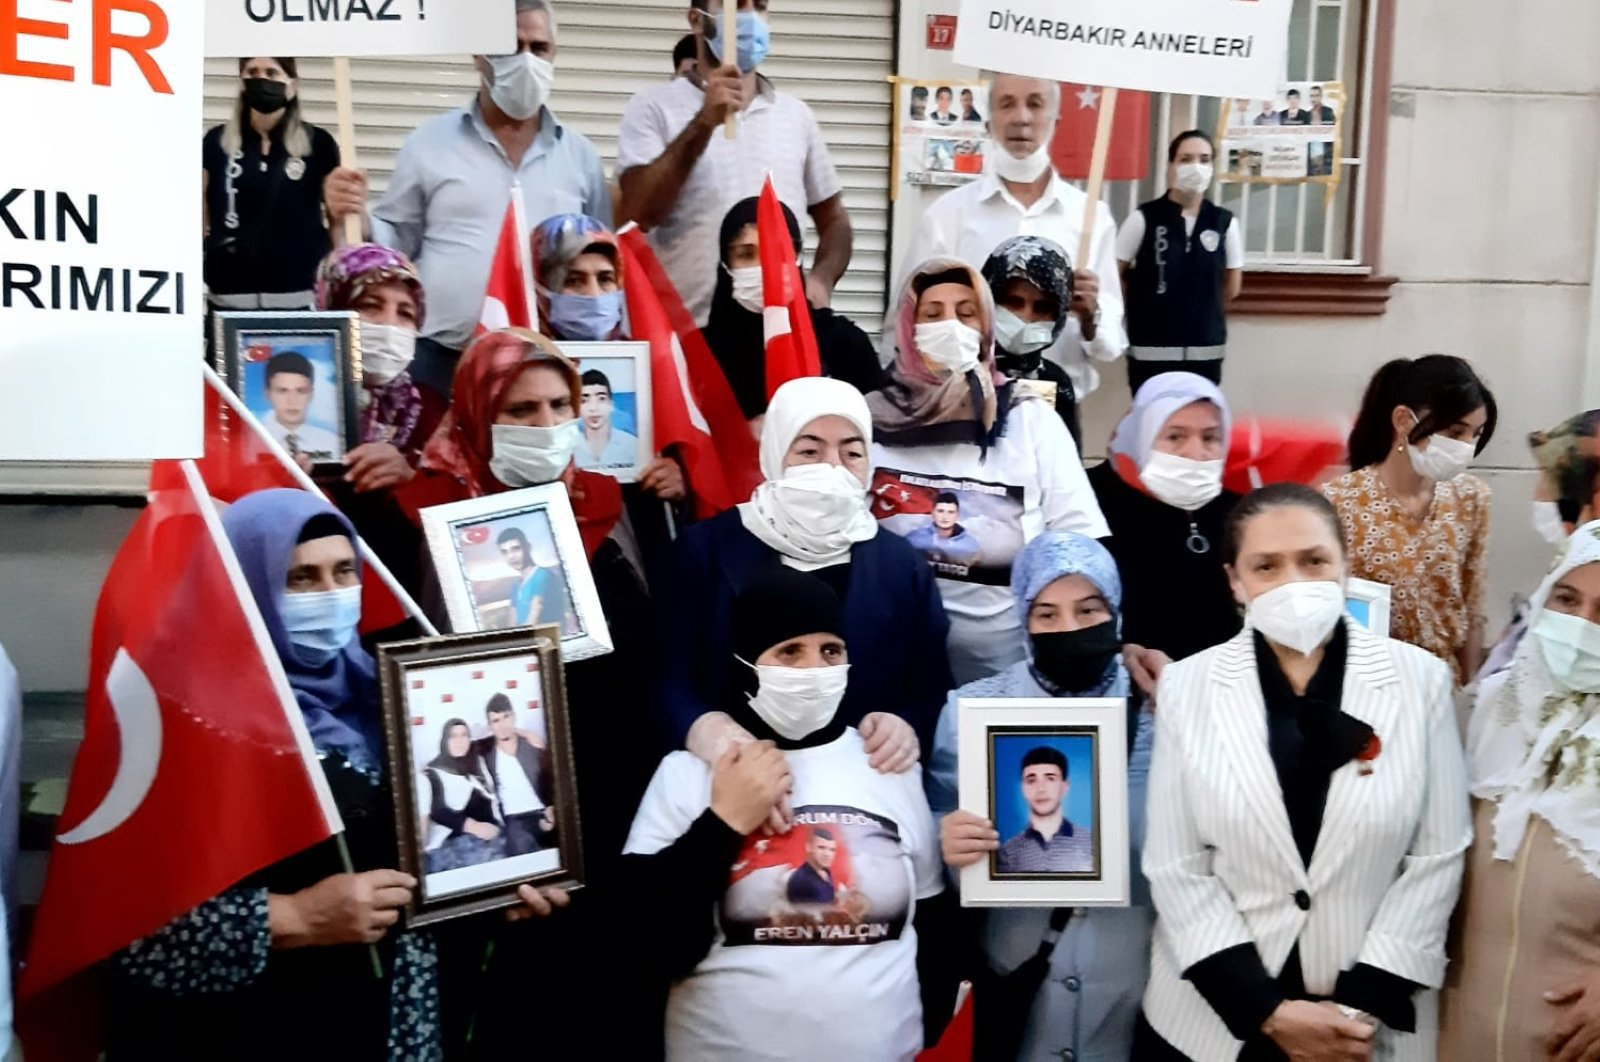 Families protest their children's abduction by the PKK terrorists in front of the HDP headquarters in Diyarbakır province. (DHA File Photo)